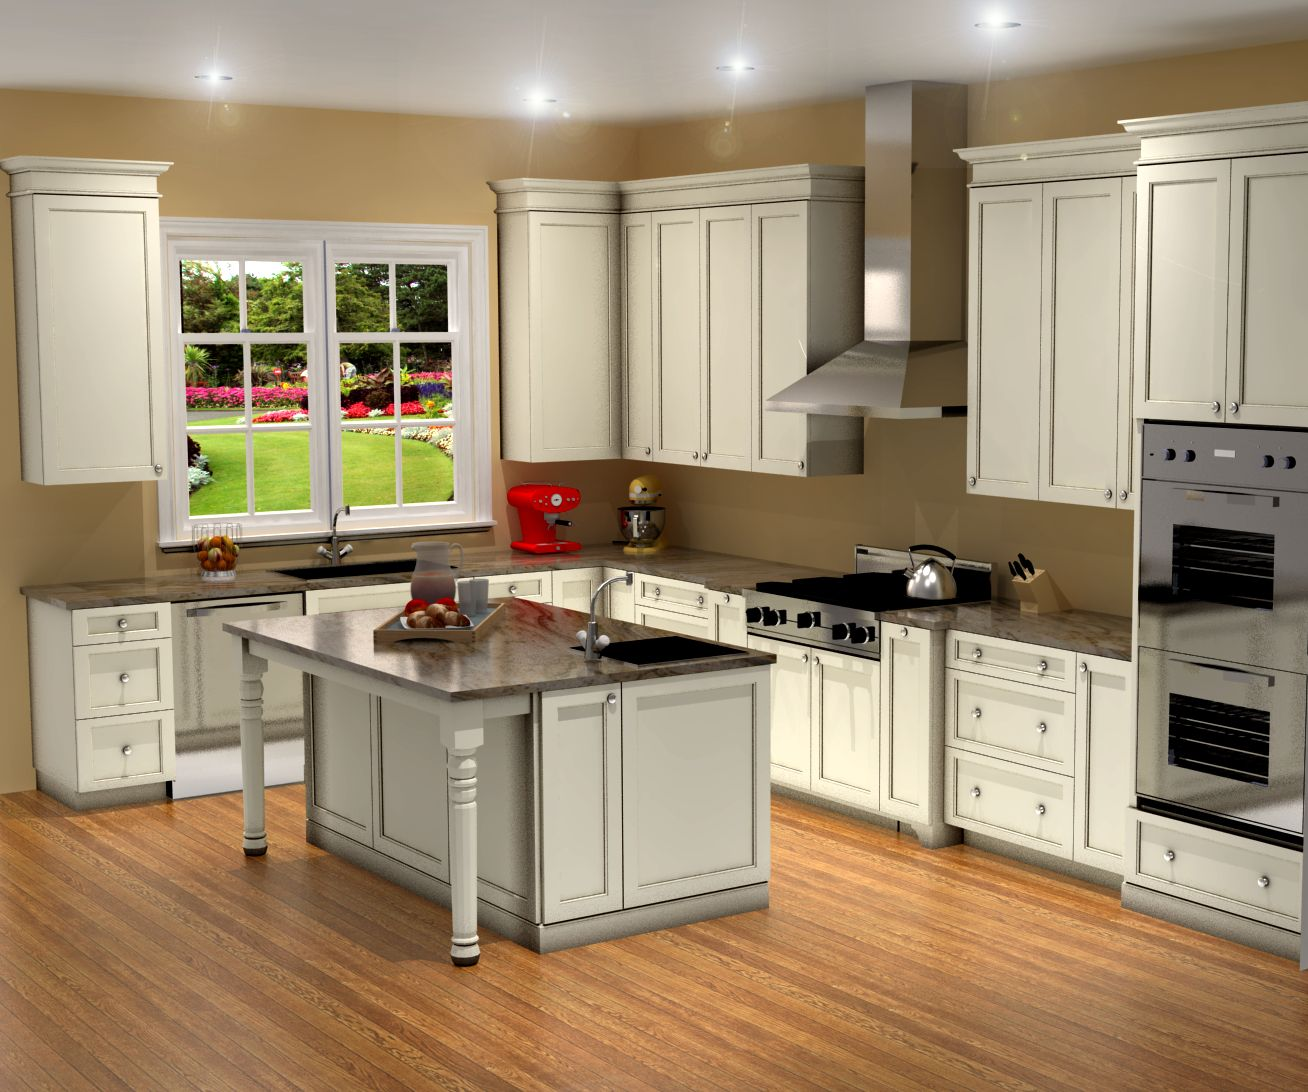 Kitchen Cabinets Design Video Traditional White Kitchen Design 3d Rendering Nick